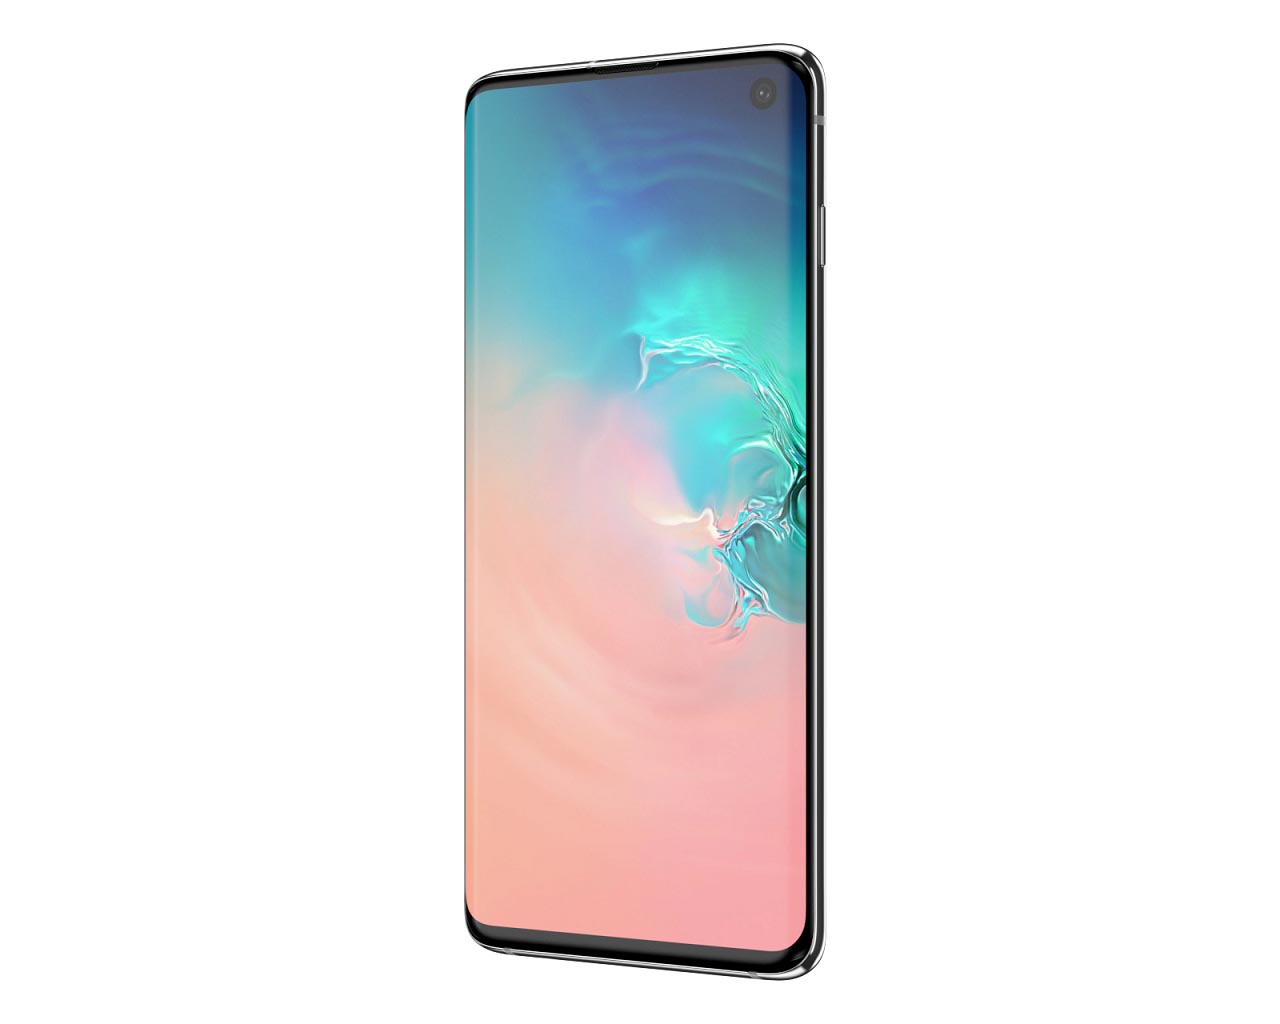 Samsung Galaxy S10 - Notebookcheck.net External Reviews